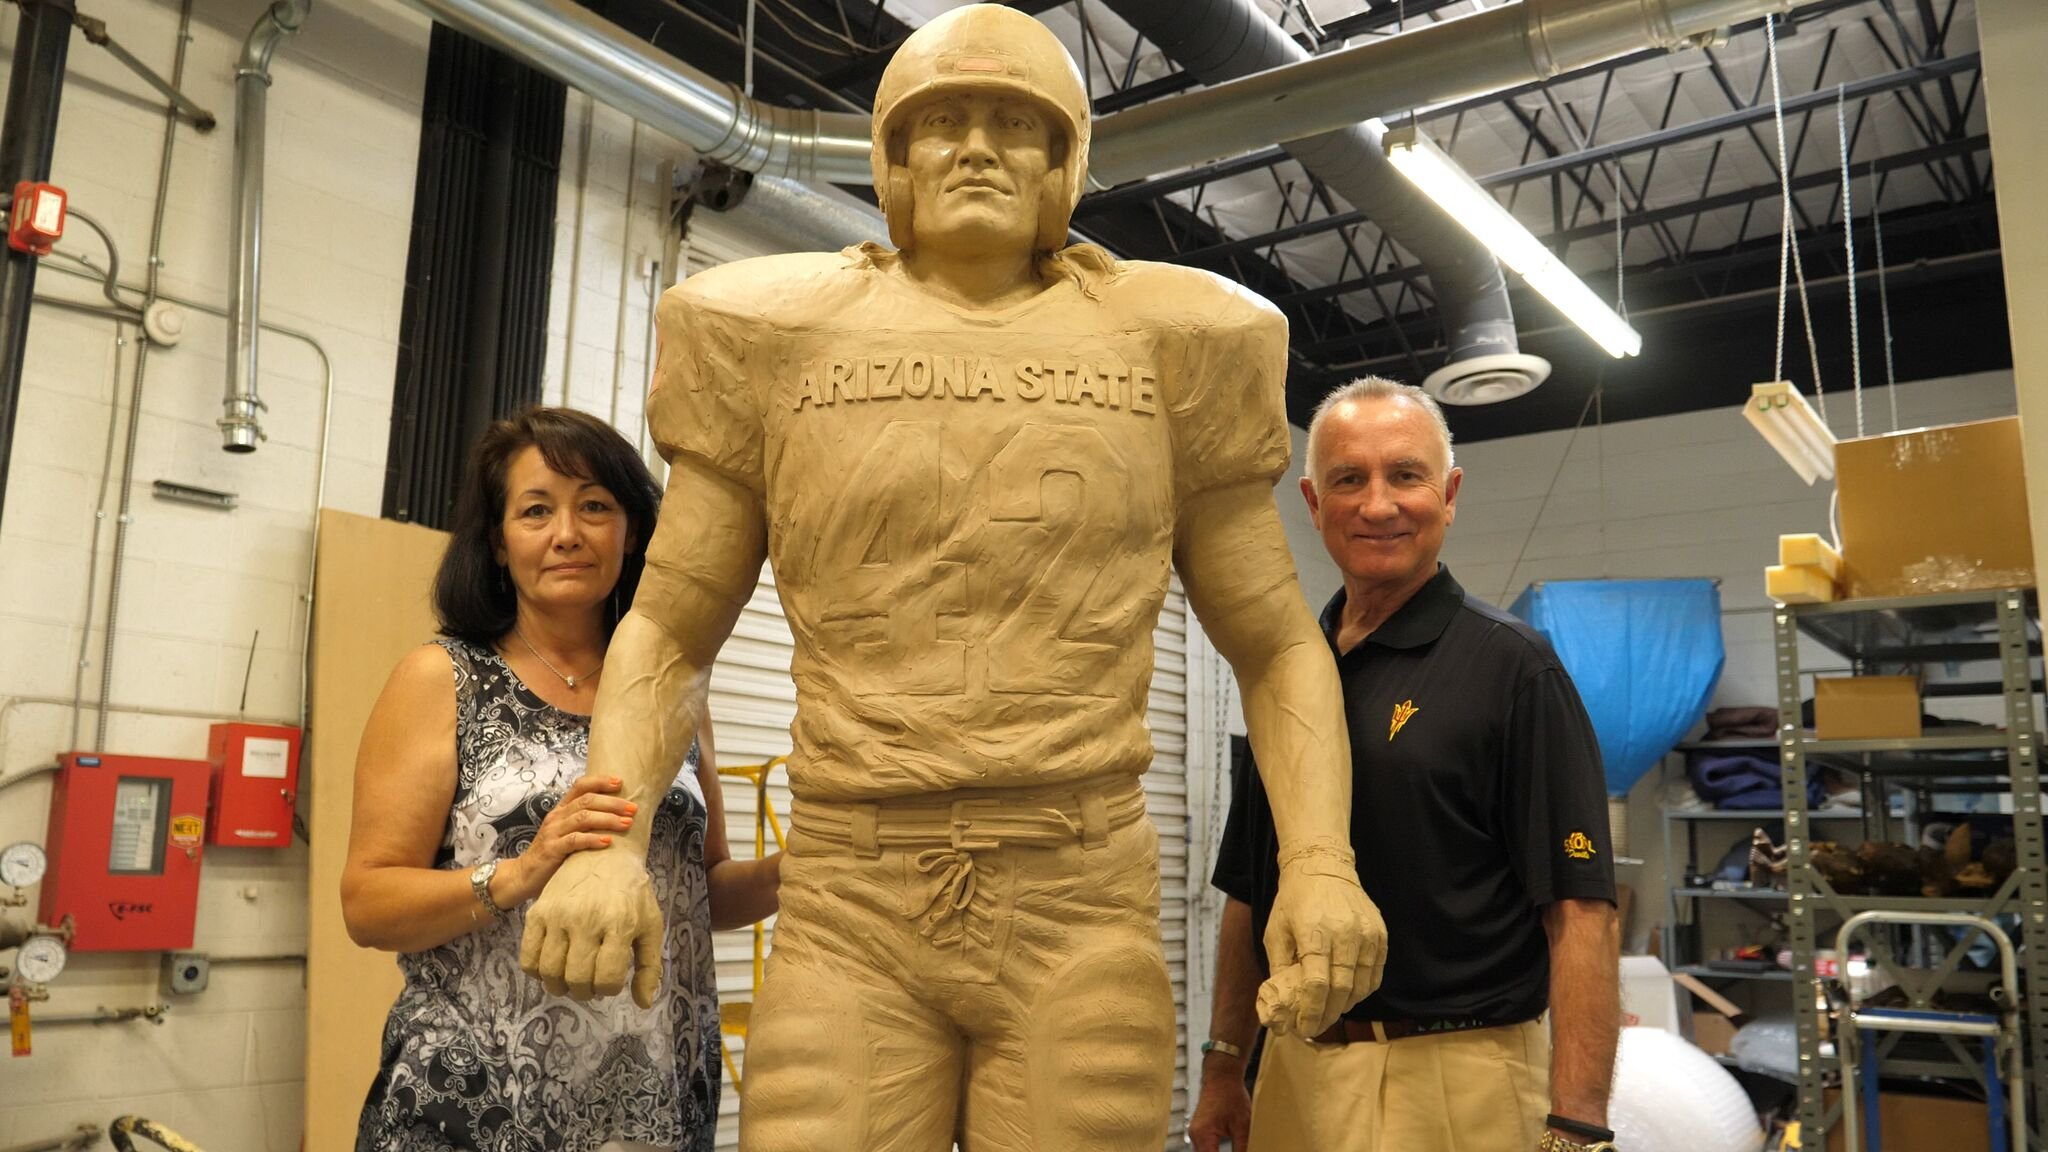 Davenport and Pearce with the statue (Photo: Sun Devil Athletics)